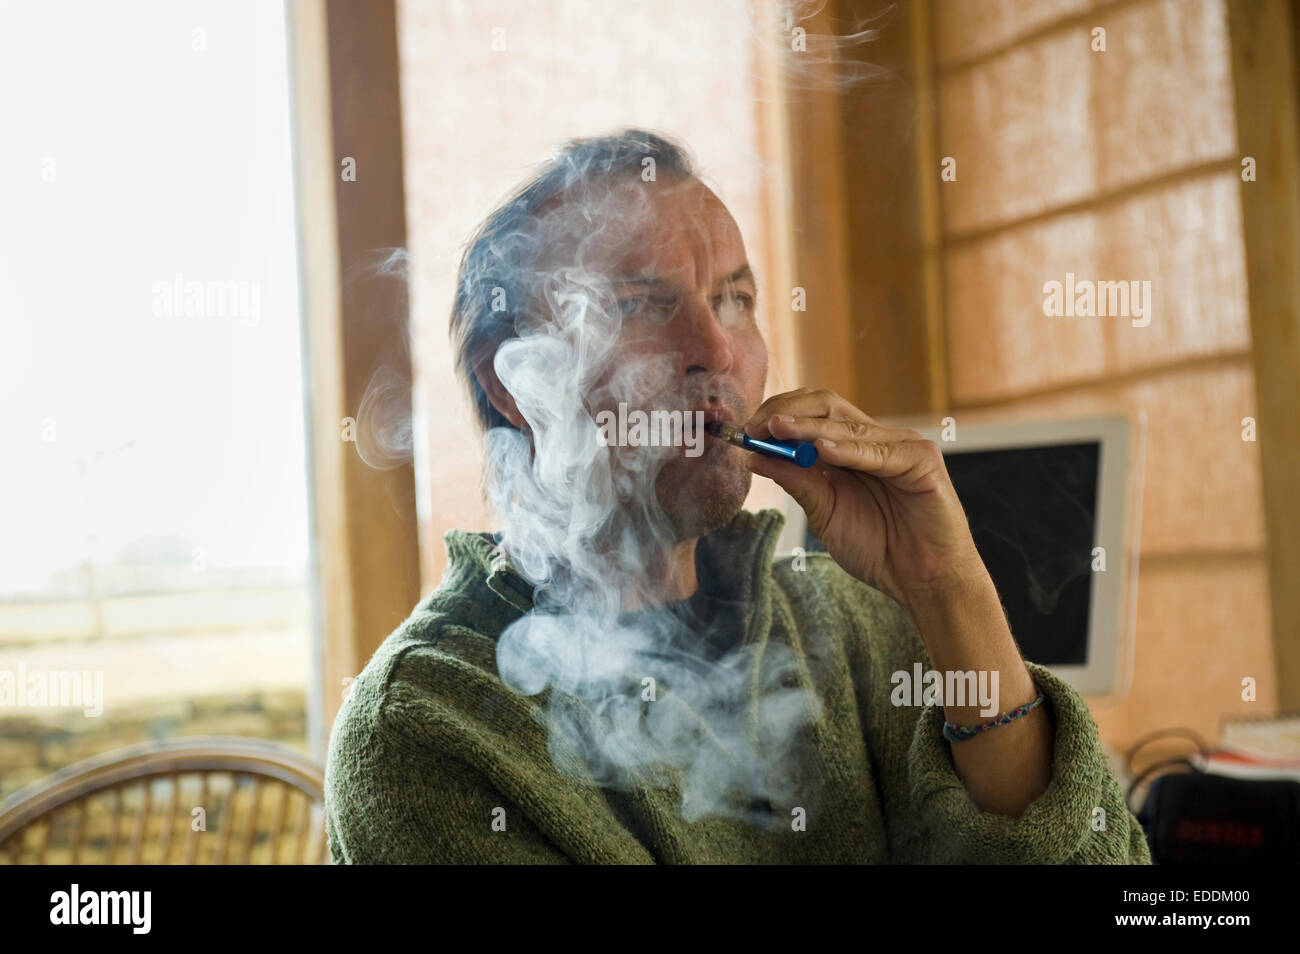 A man using an electronic cigarette, vaping. - Stock Image